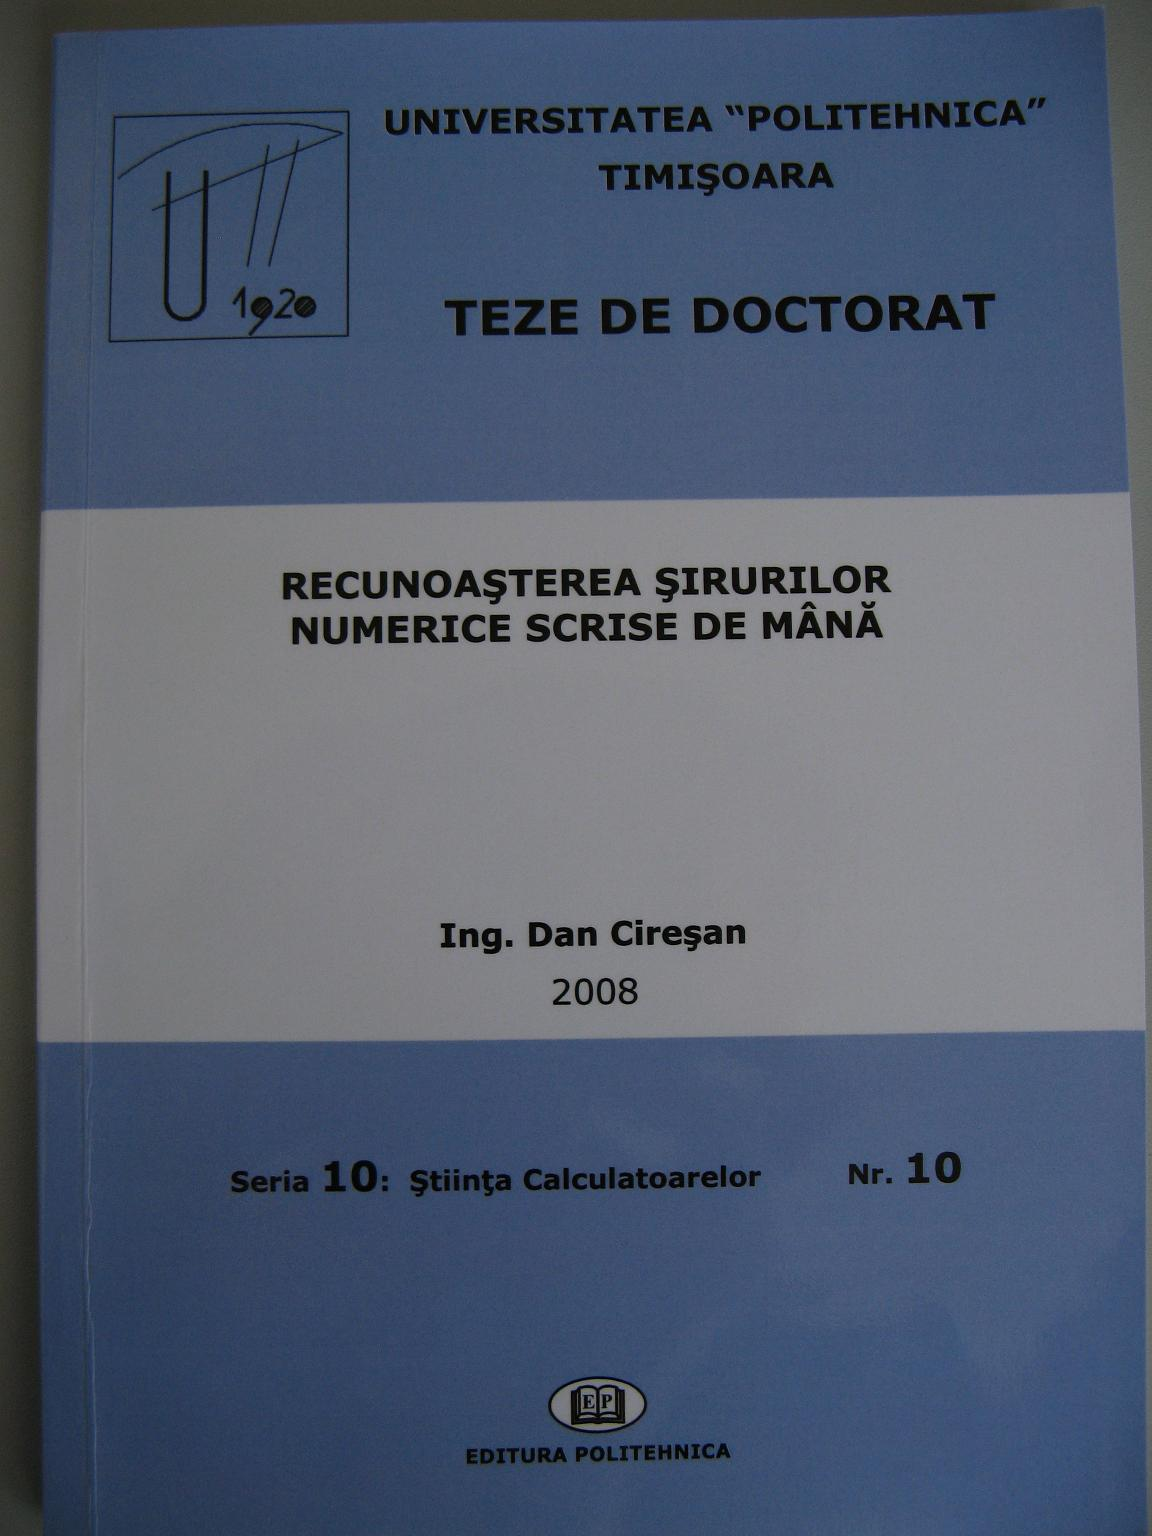 thesis doctoral degree